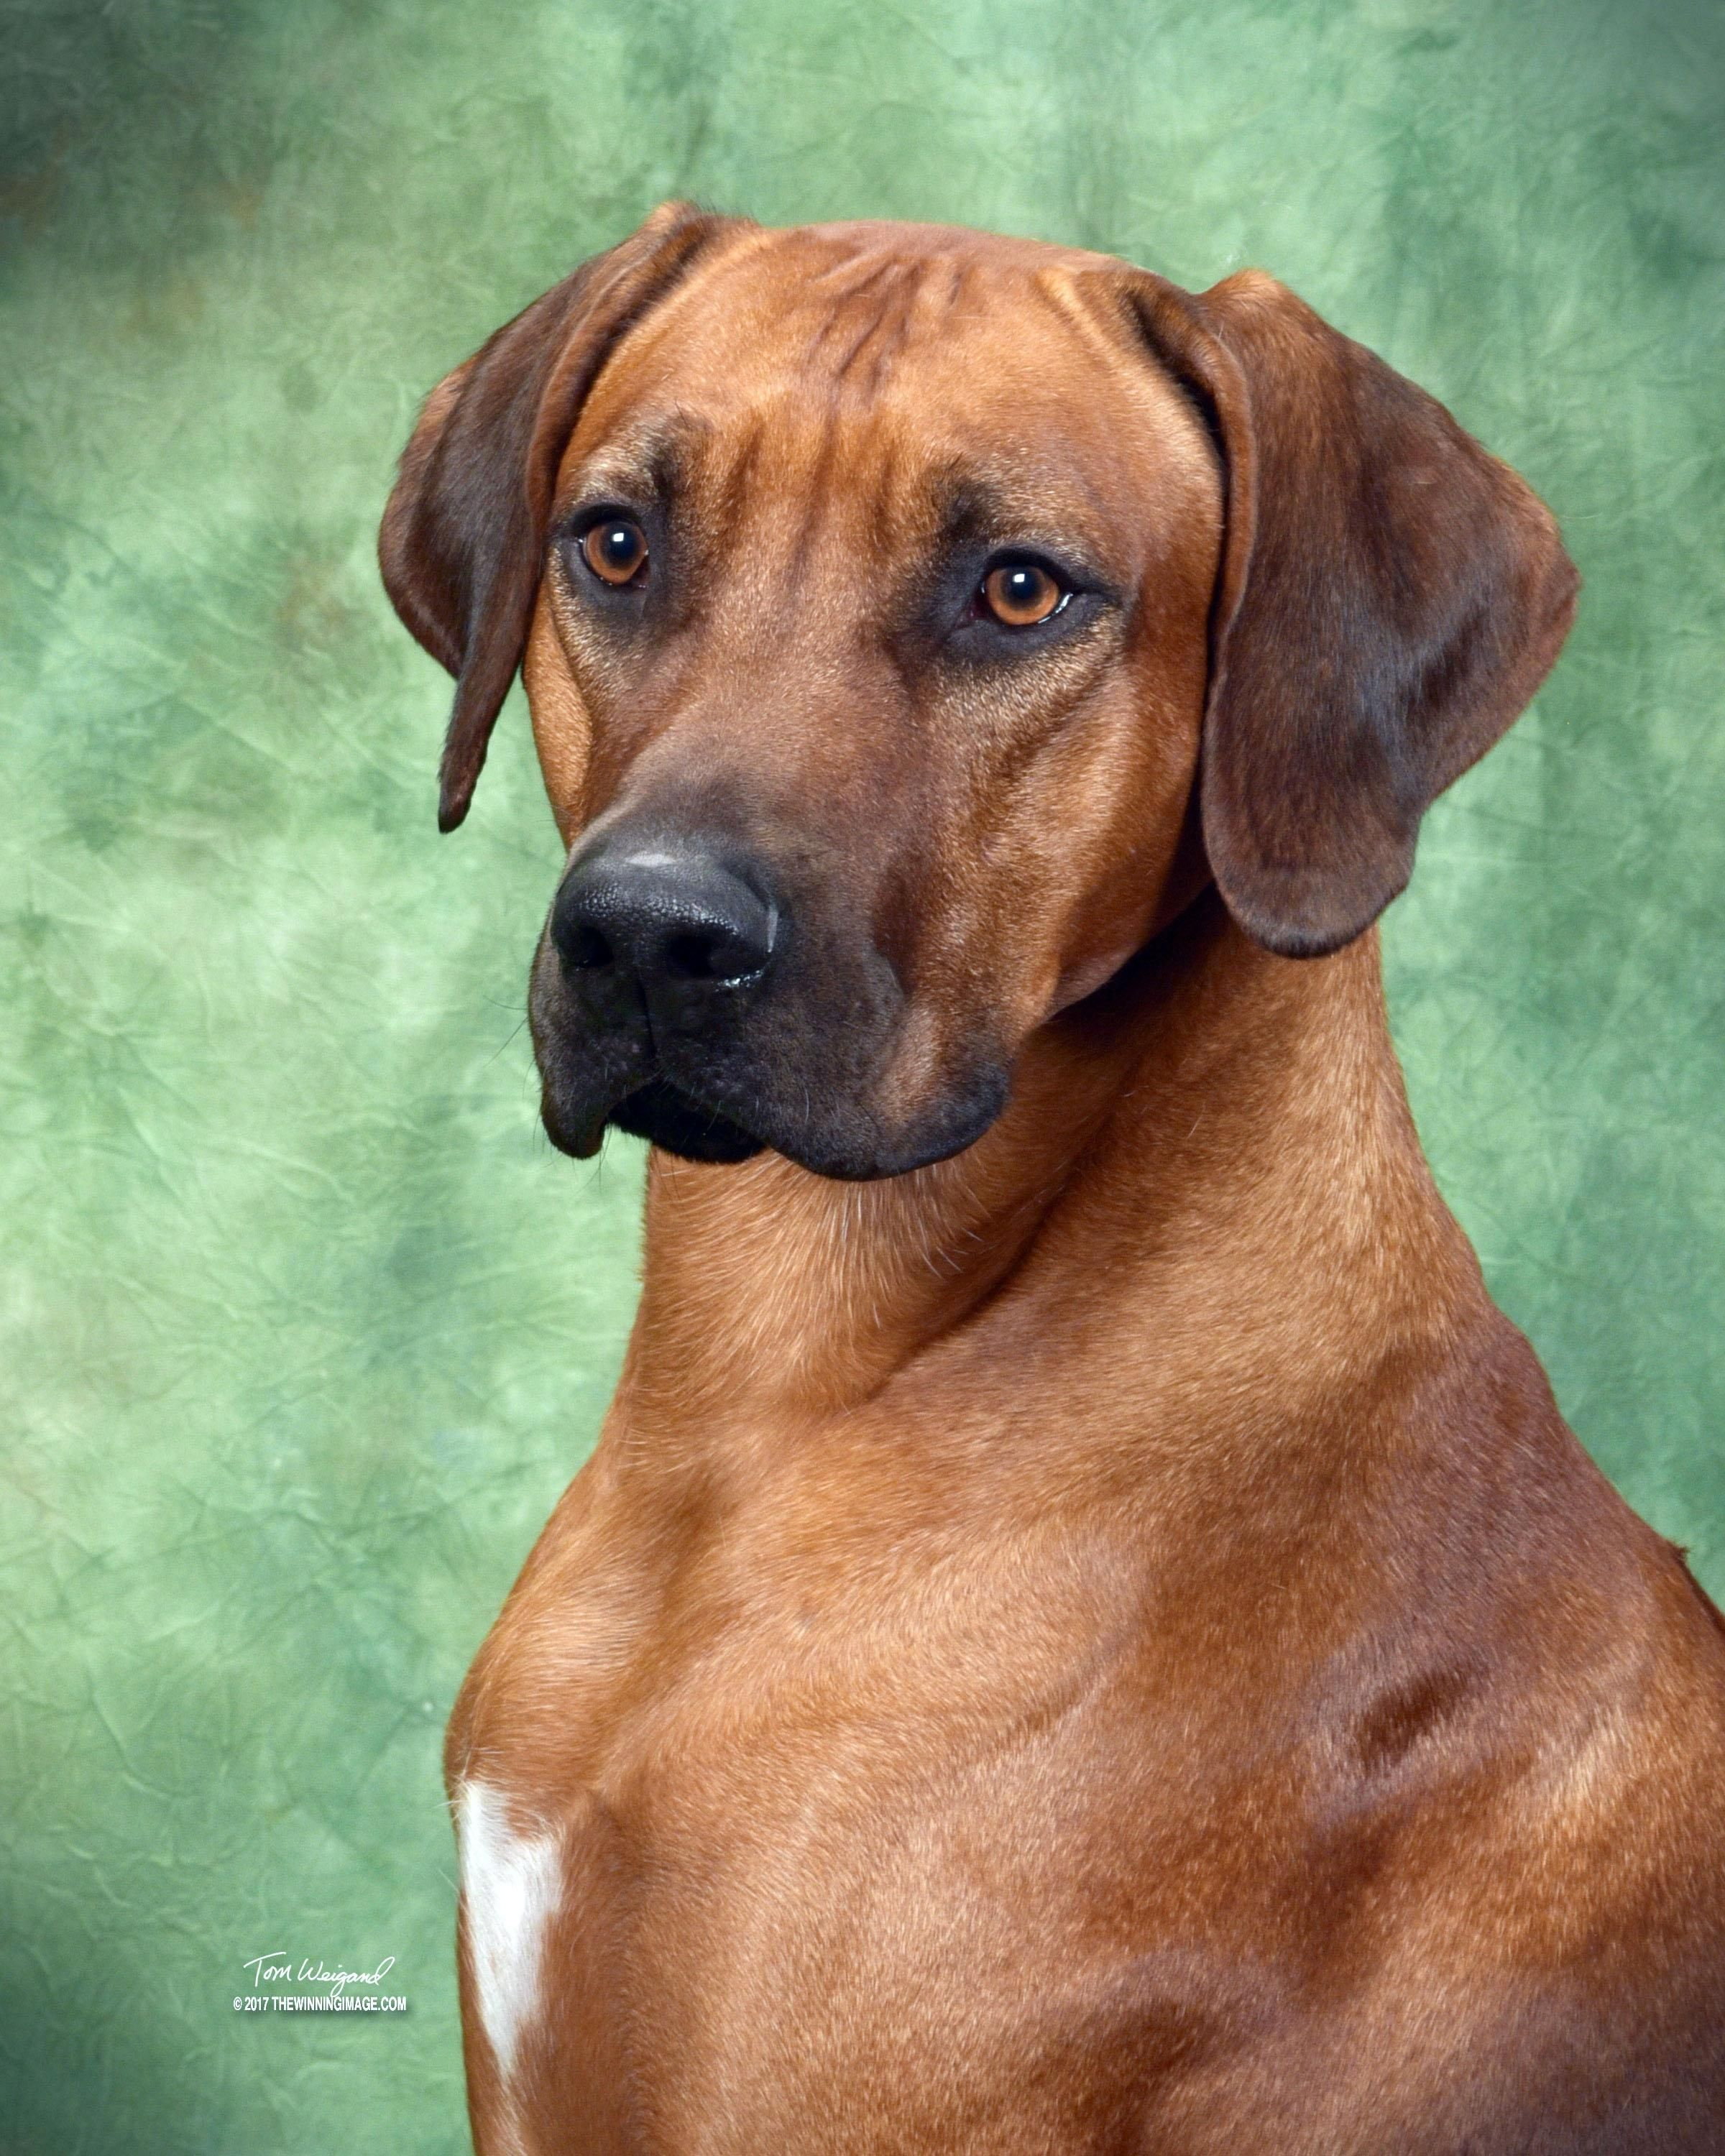 Salem Artemus A Nearly 3 Year Old Rhodesian Ridgeback Is No Stranger To Competition The Decorated Pup Ha Rhodesian Ridgeback Dog Westminster Dog Show Dogs